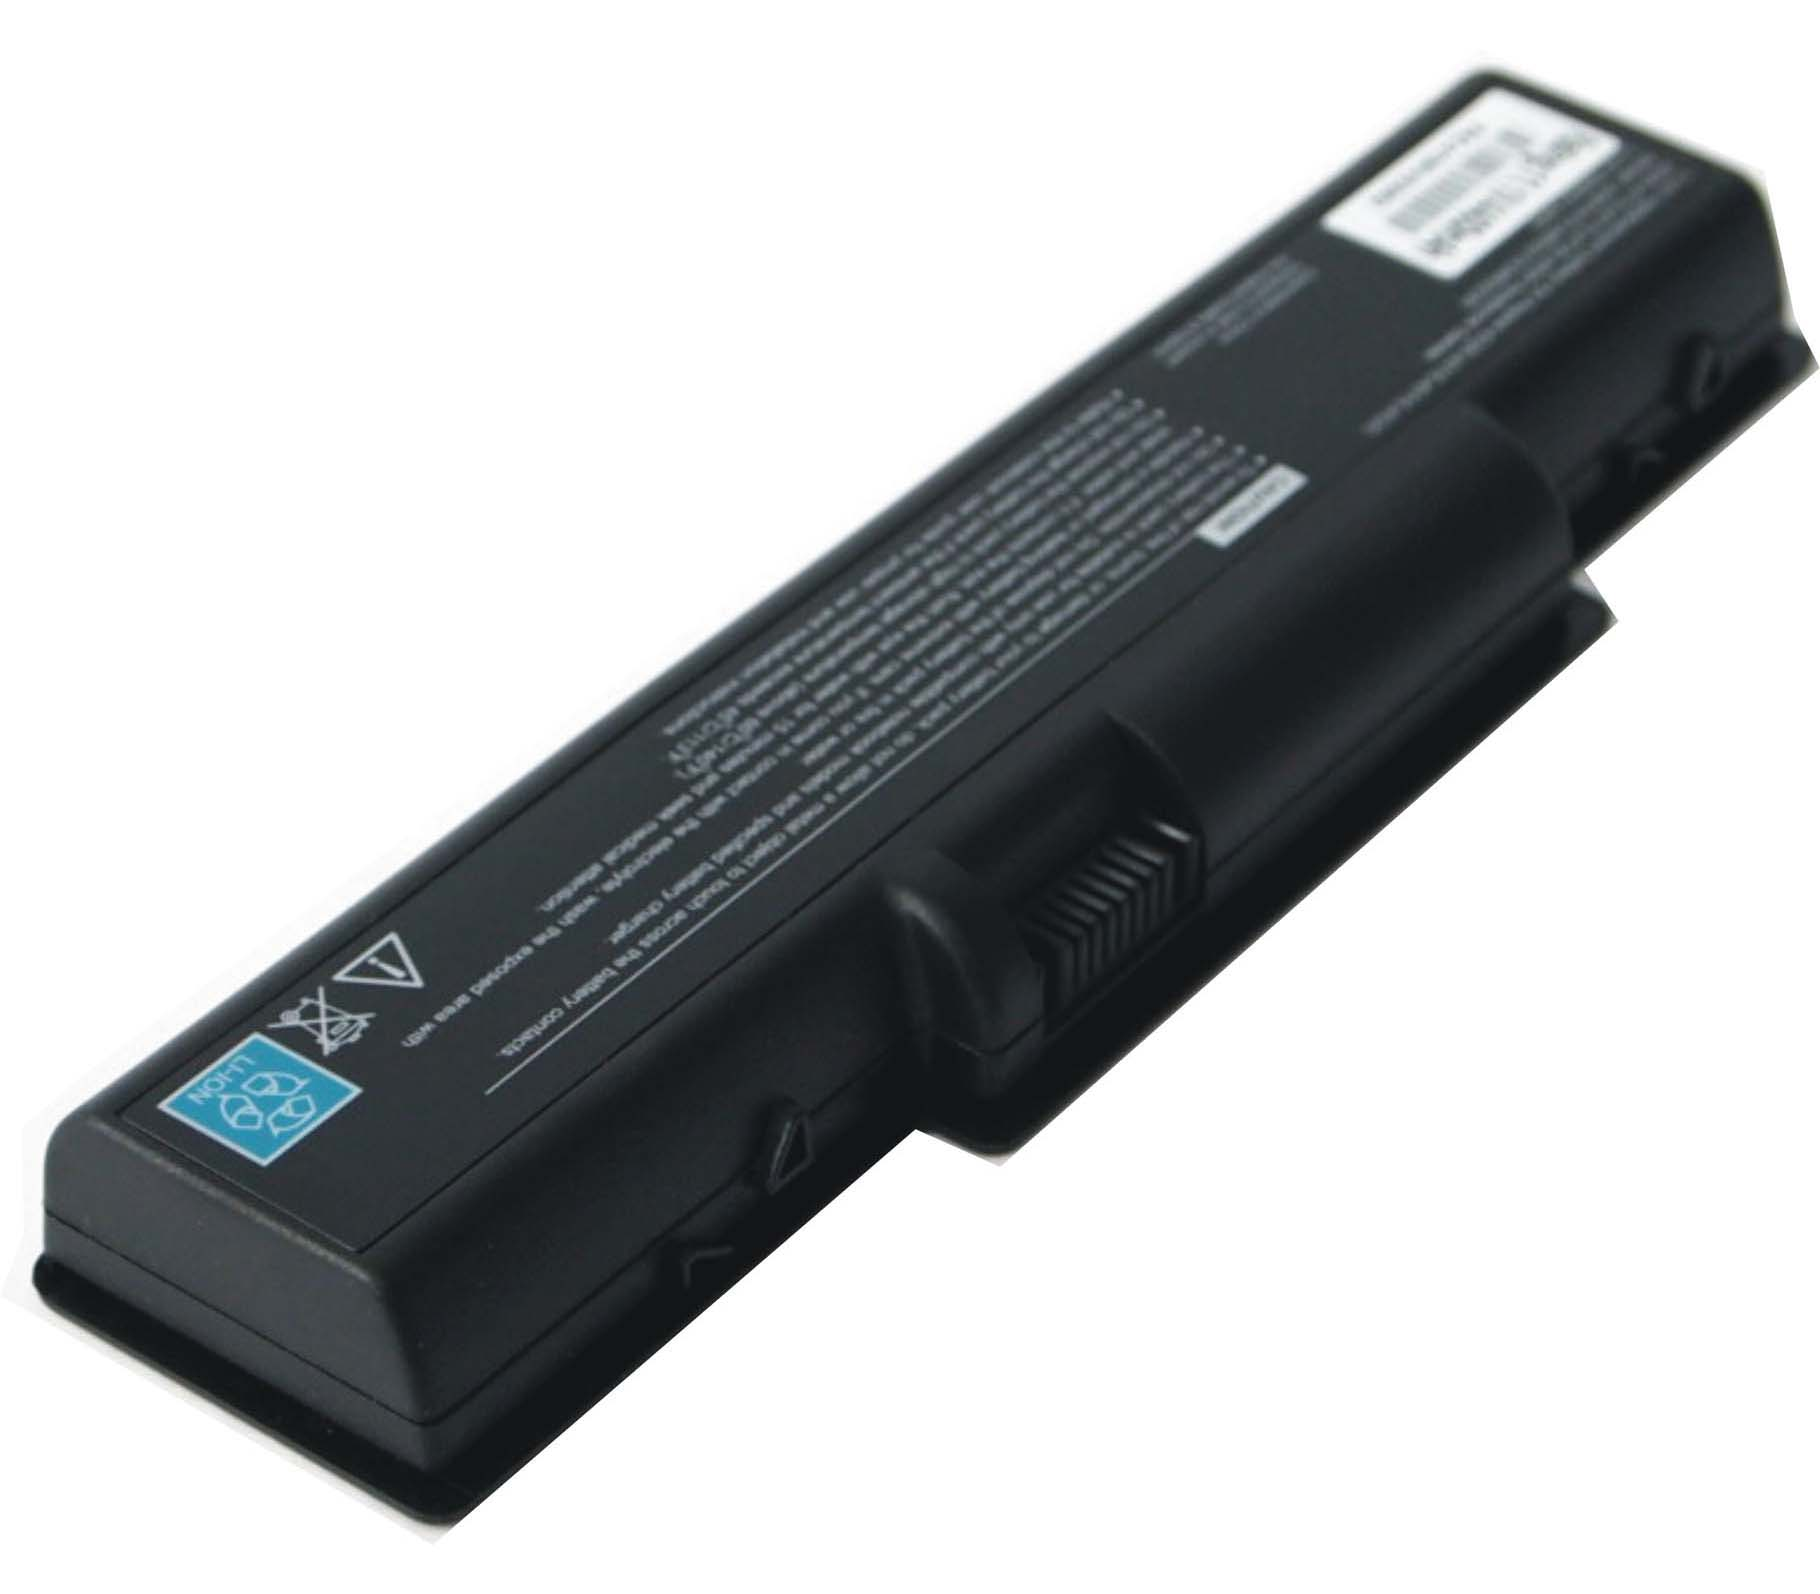 Asus Aspire 4710: Replacement For Acer AS07A31 Battery